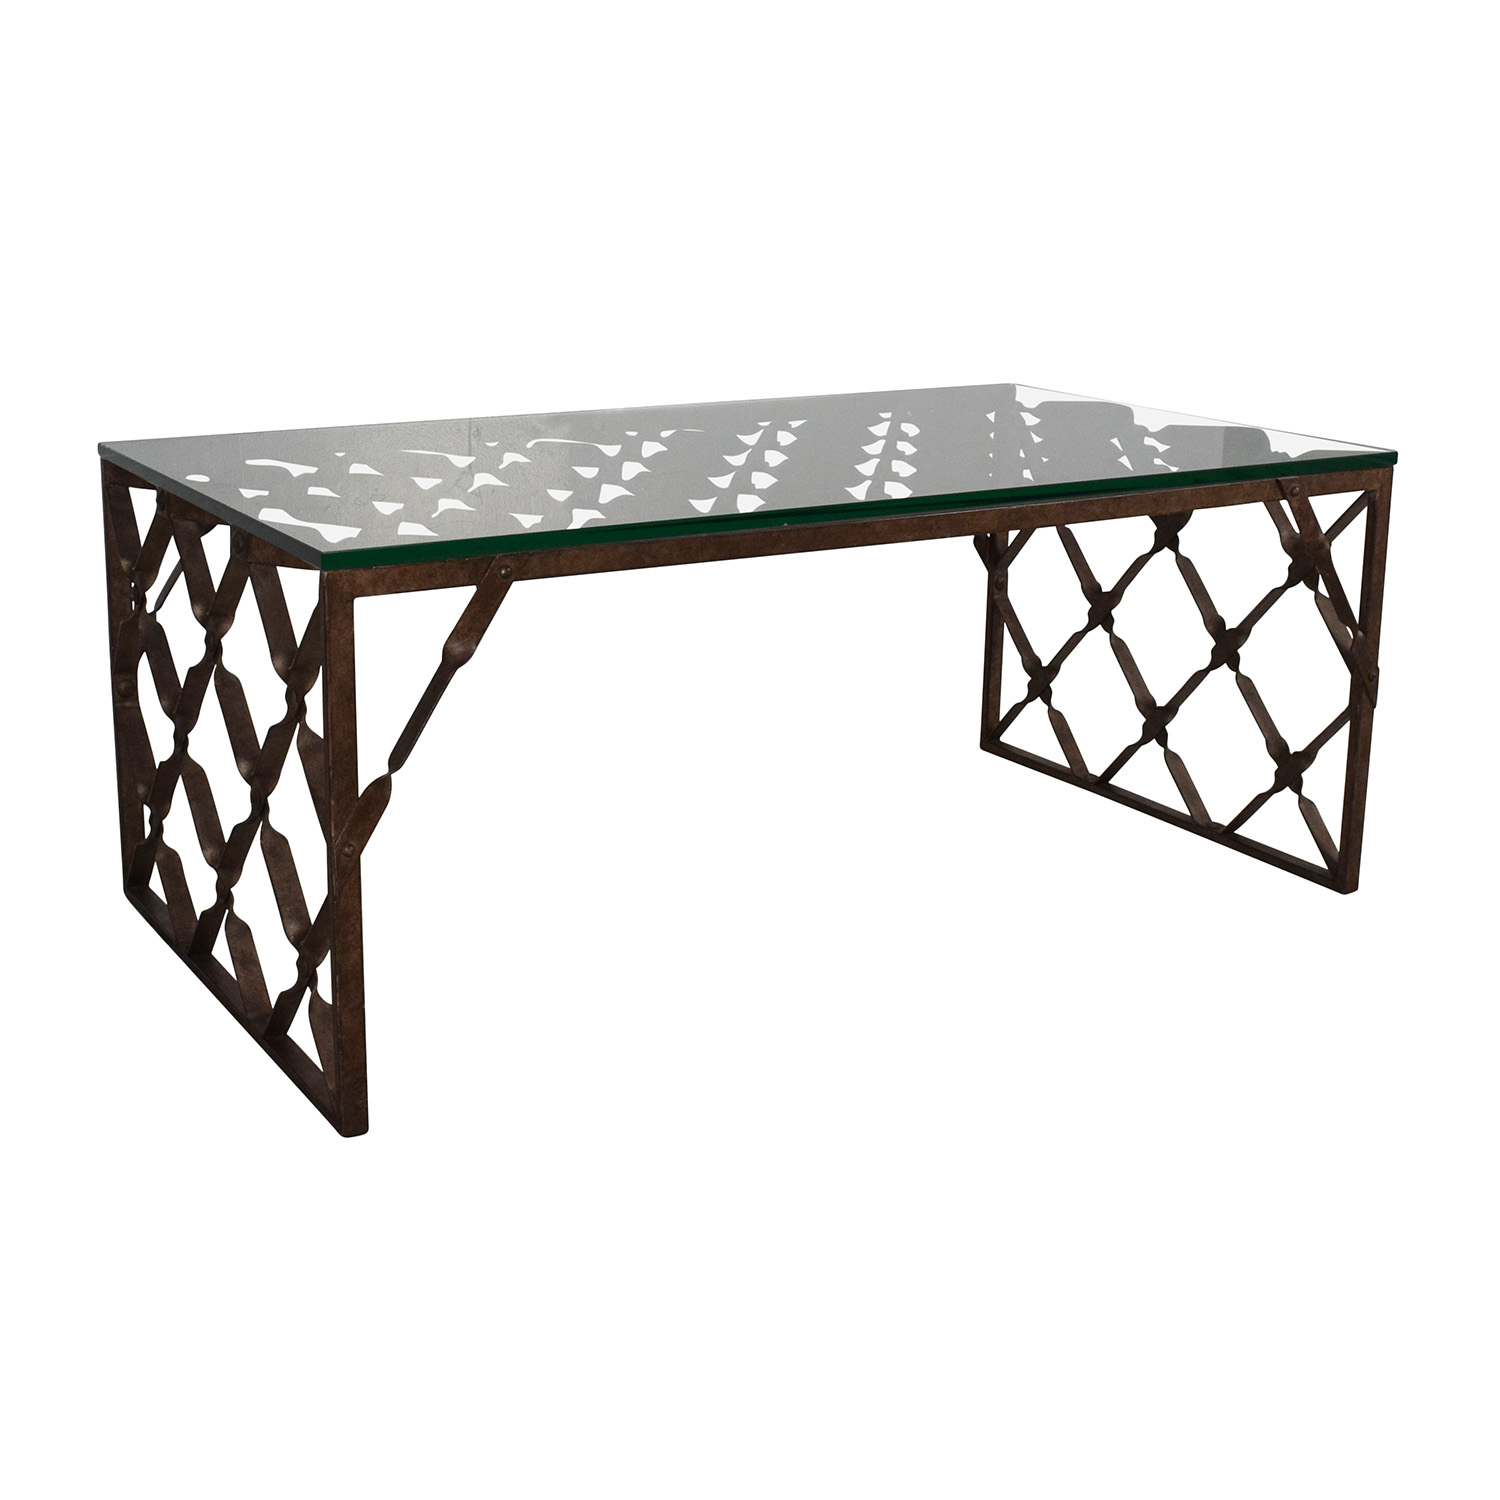 82 off crate and barrel crate barrel glass top metalwork coffee table tables Coffee tables glass top